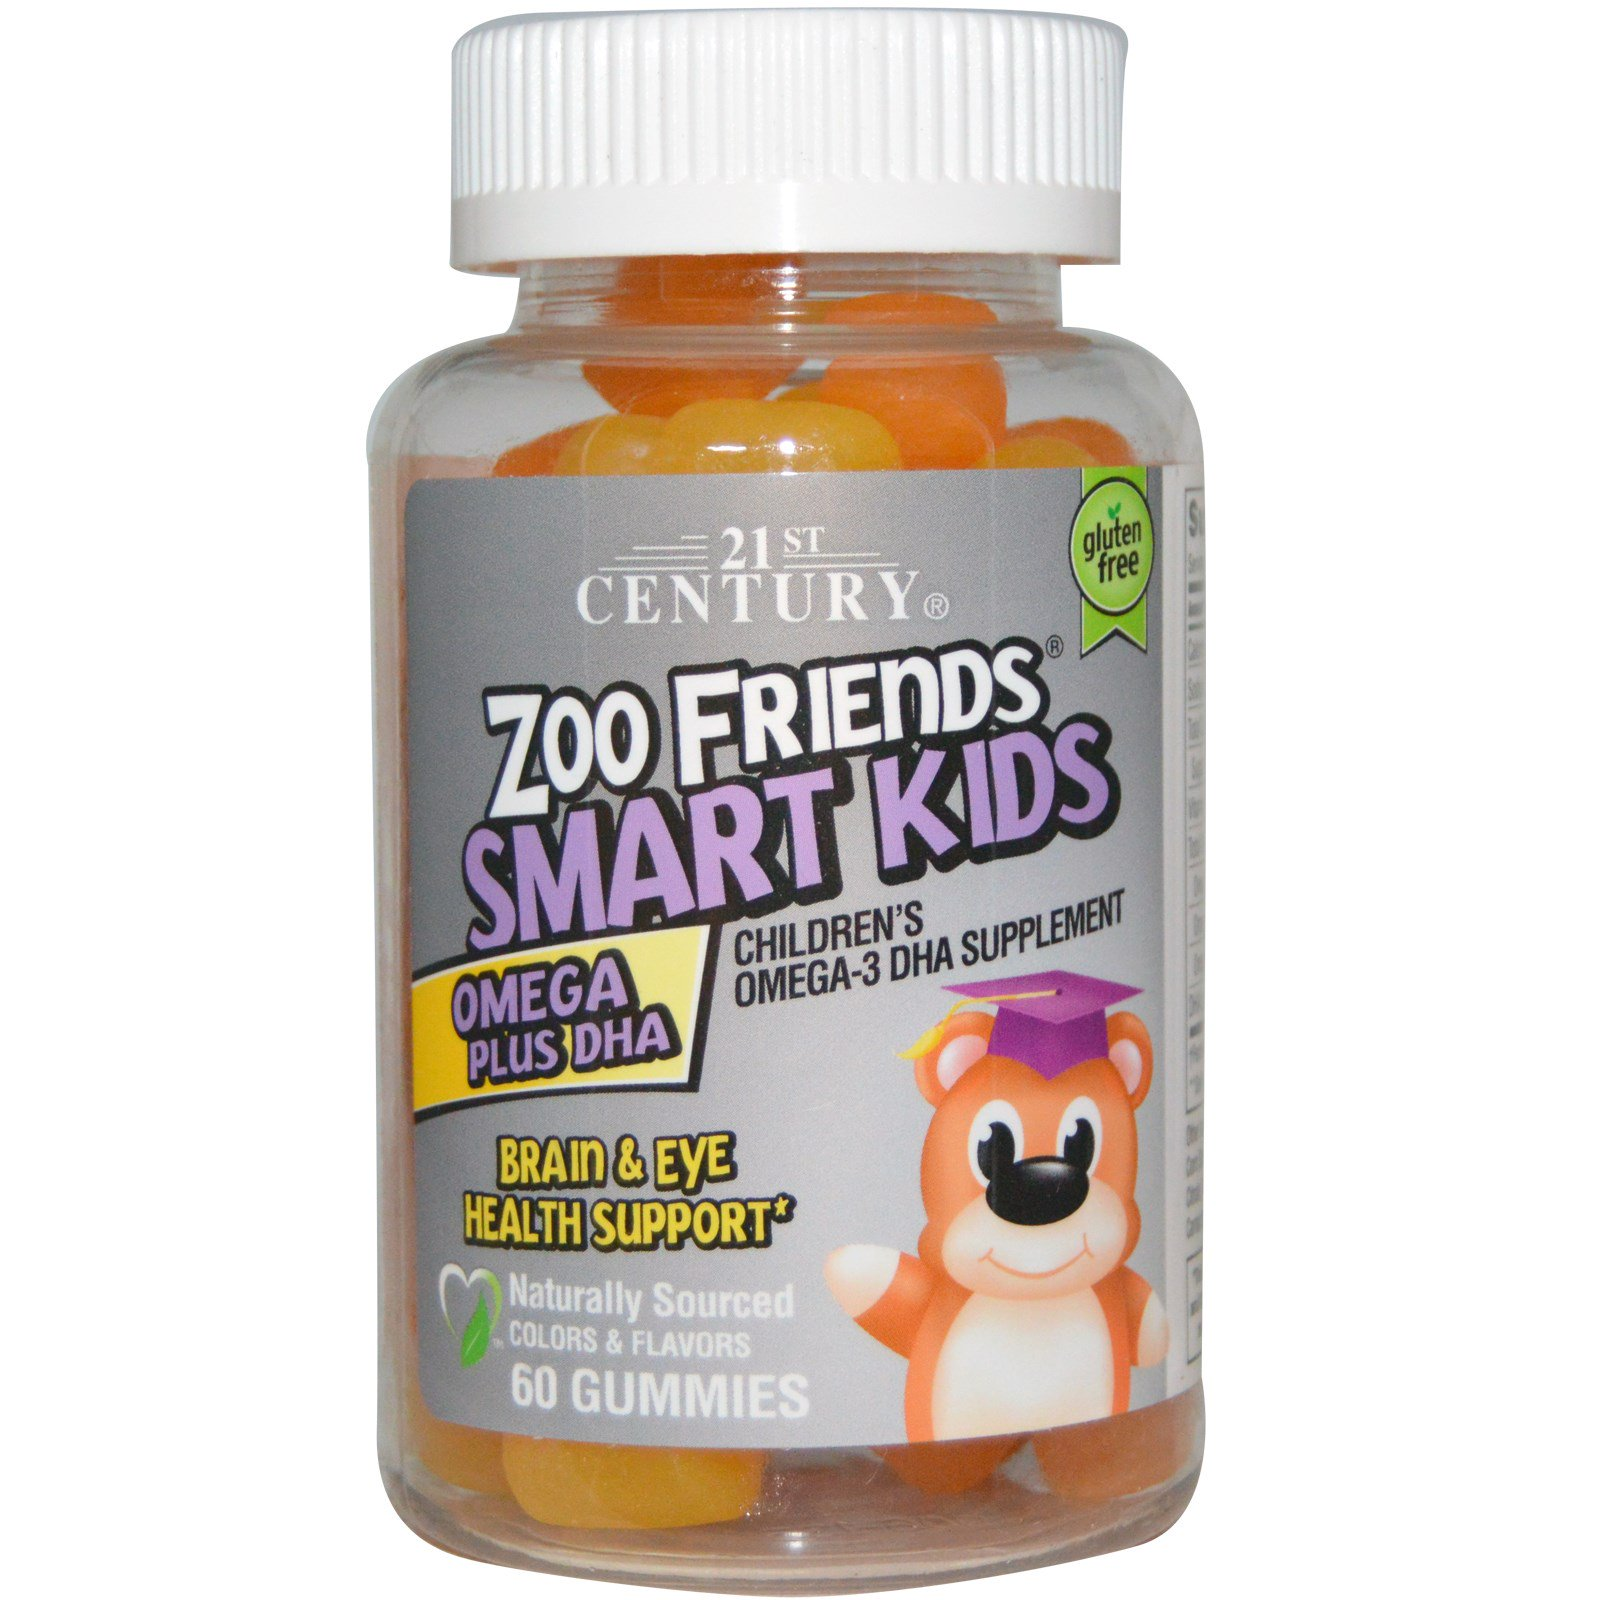 21st Century, Zoo Friends Smart Kids Omega + DHA, 60 gummys